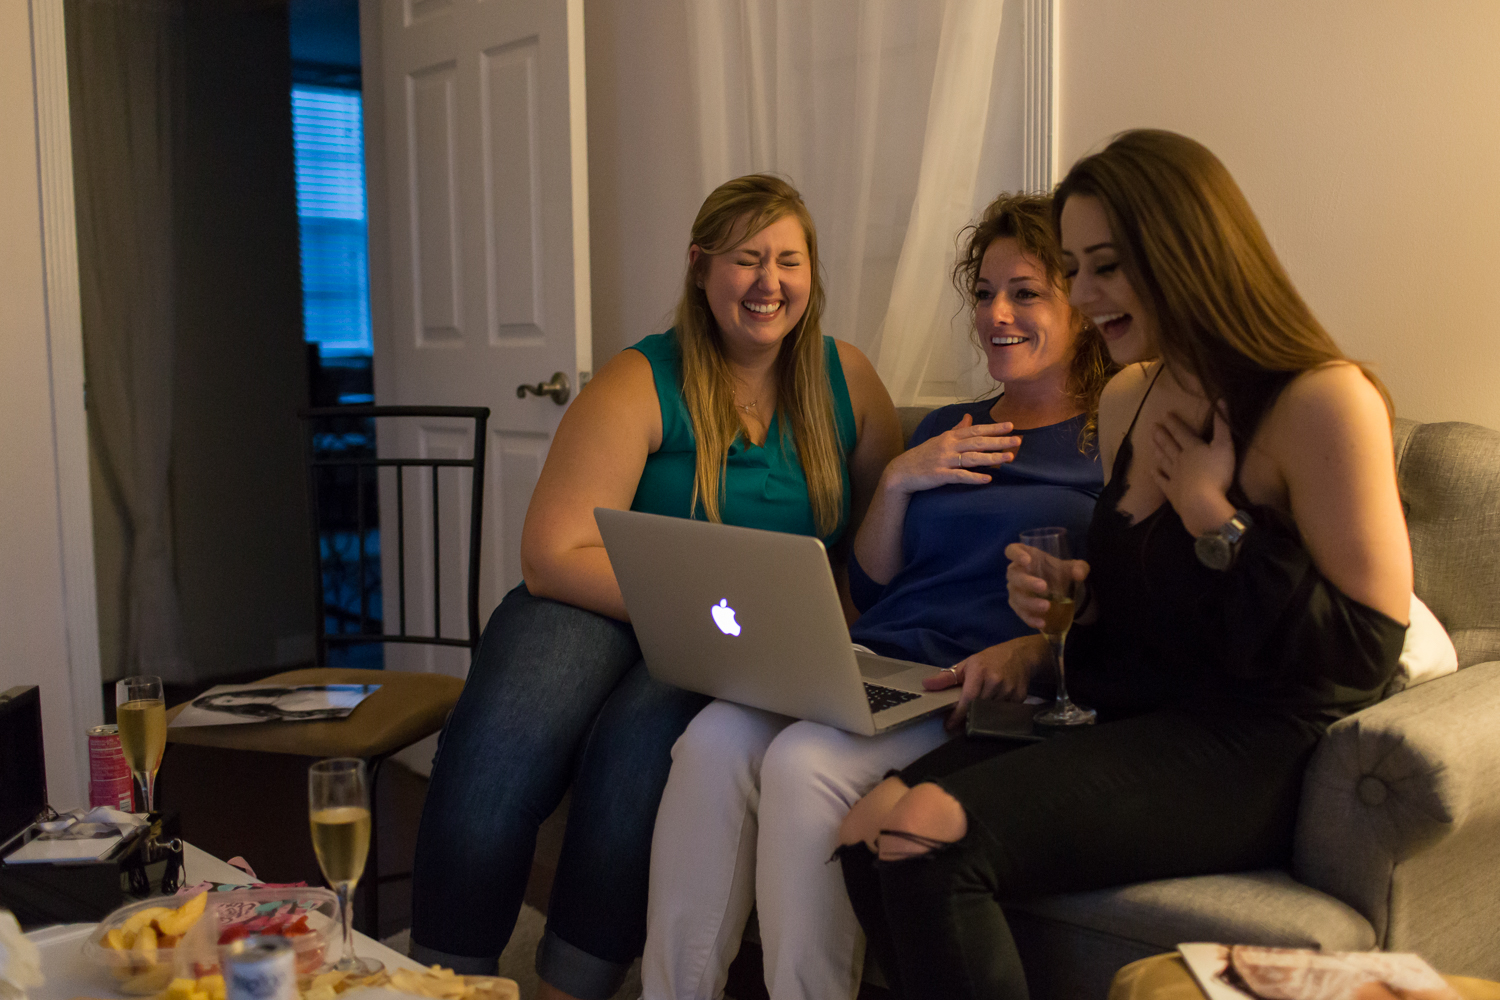 Three girls laughing together on couch